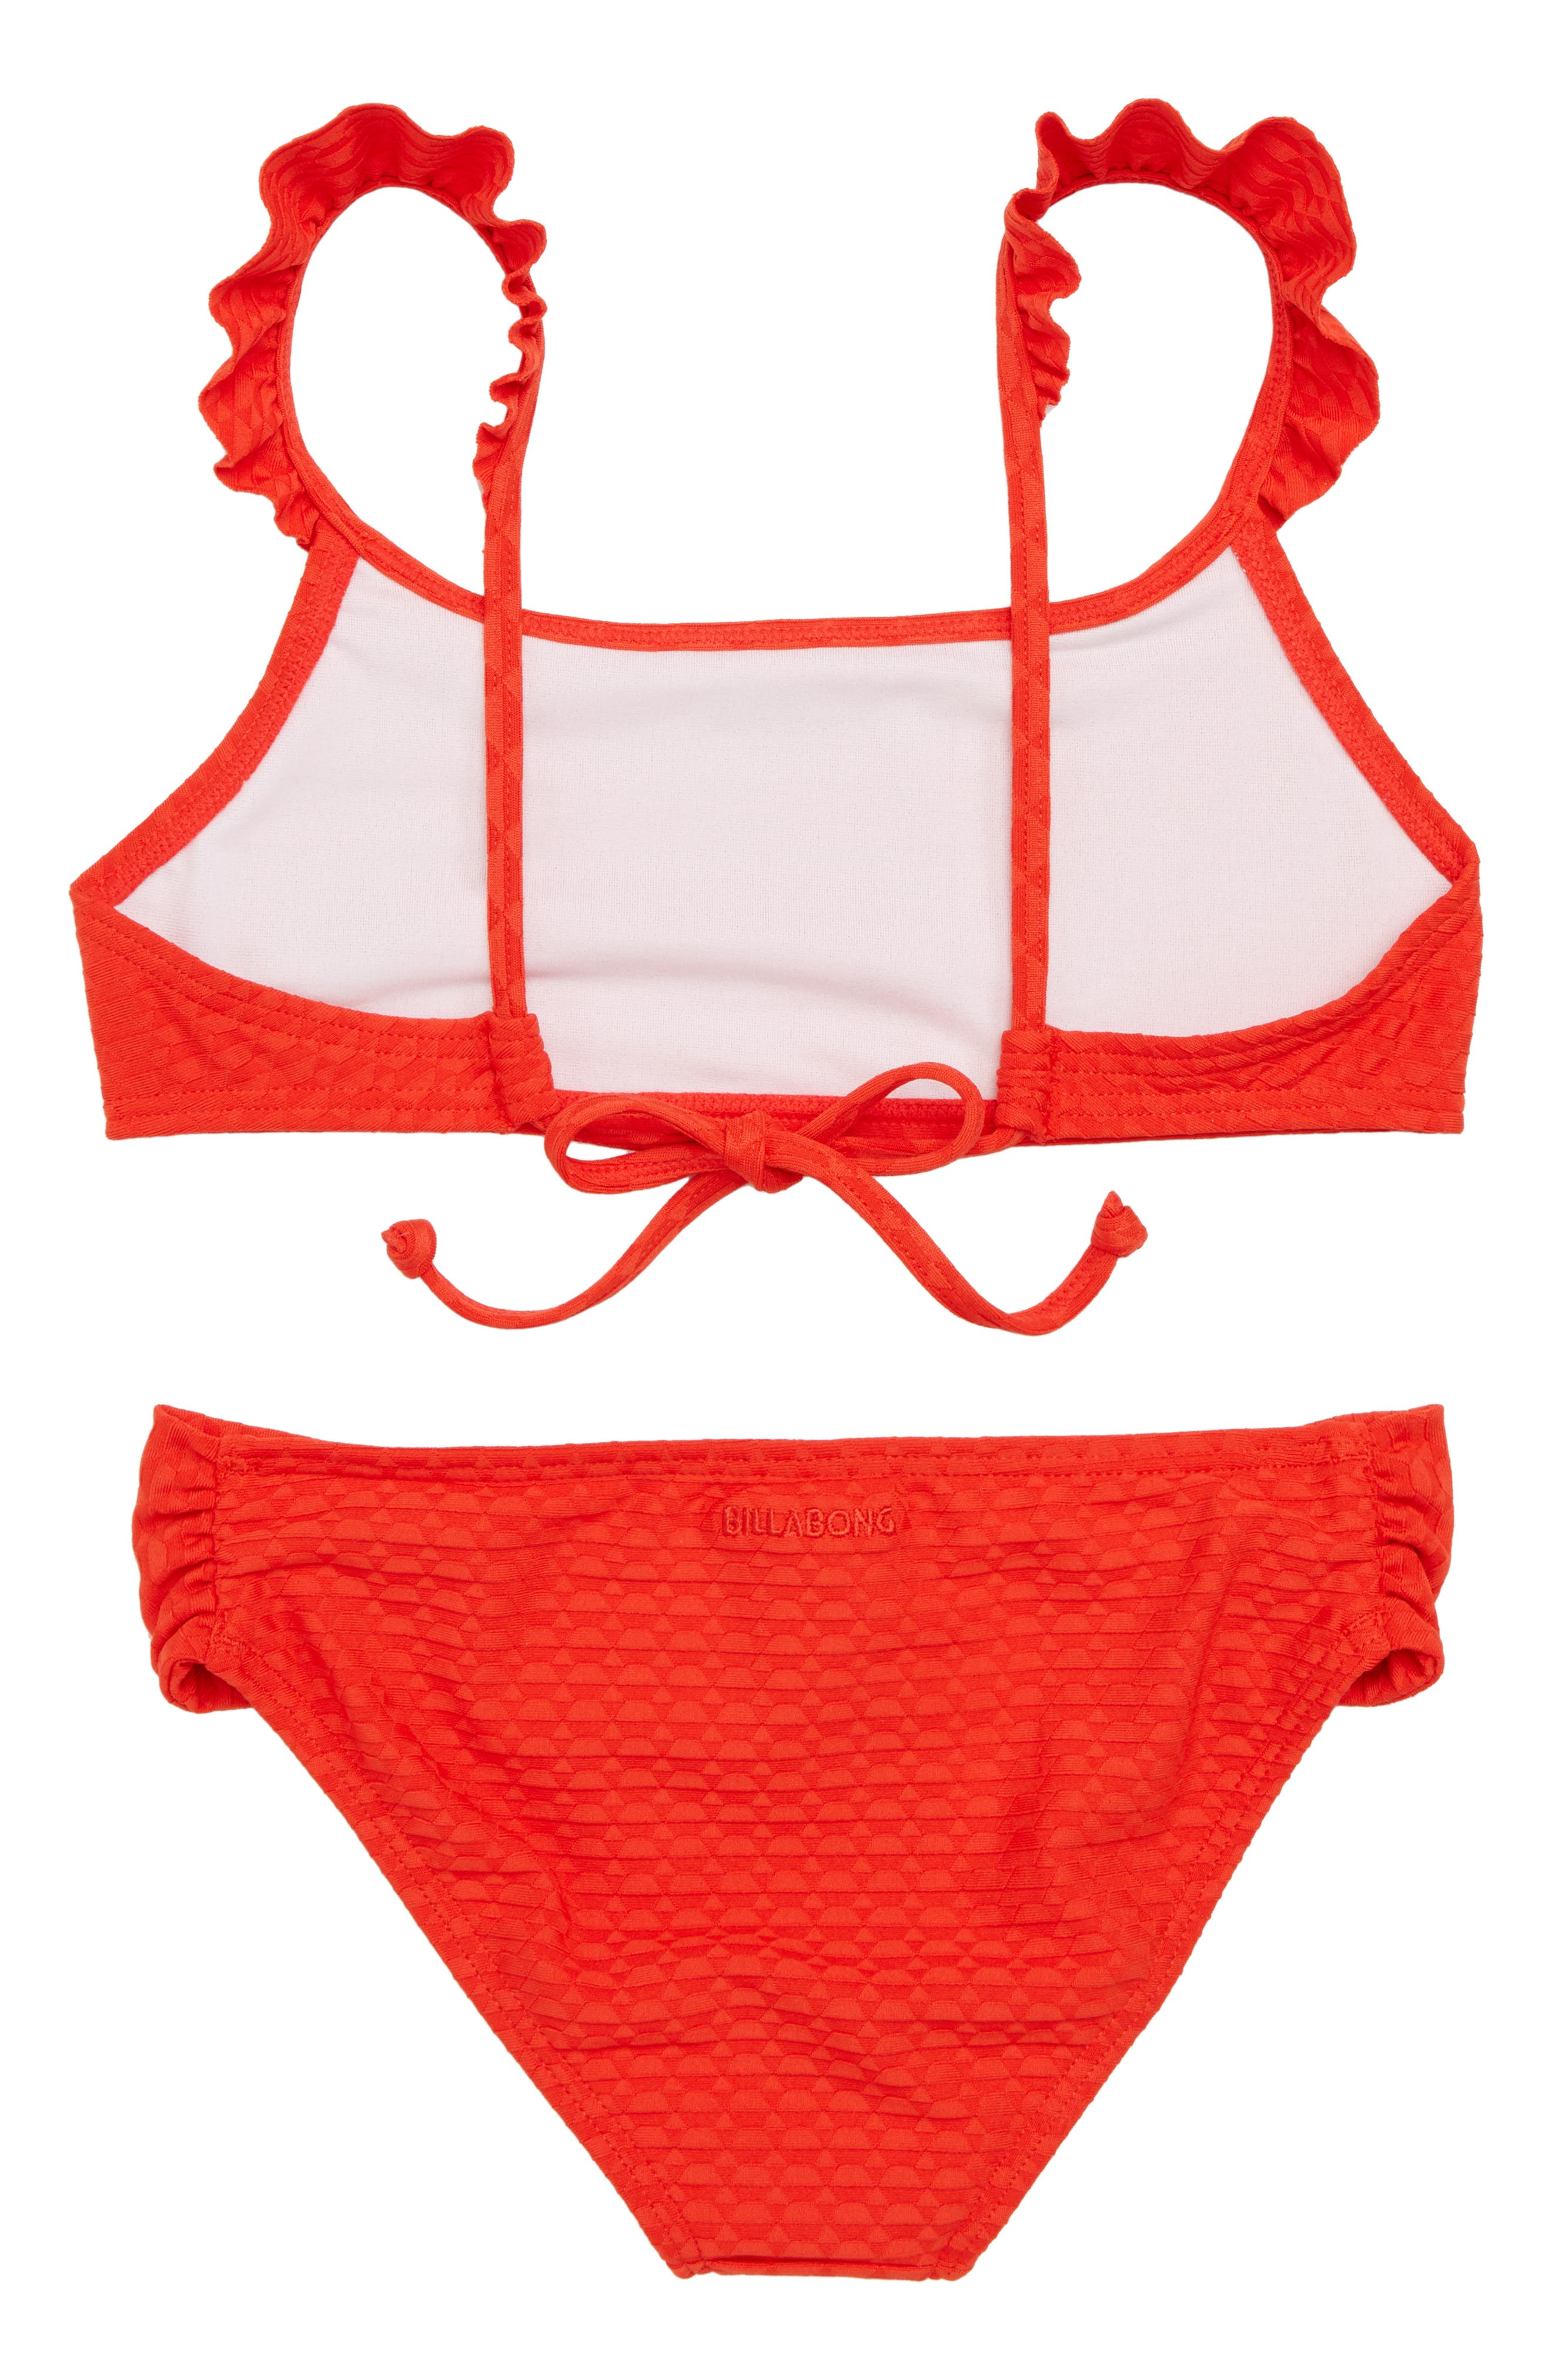 Makin Shapes Two-Piece Swimsuit,                             Alternate thumbnail 3, color,                             Poppy